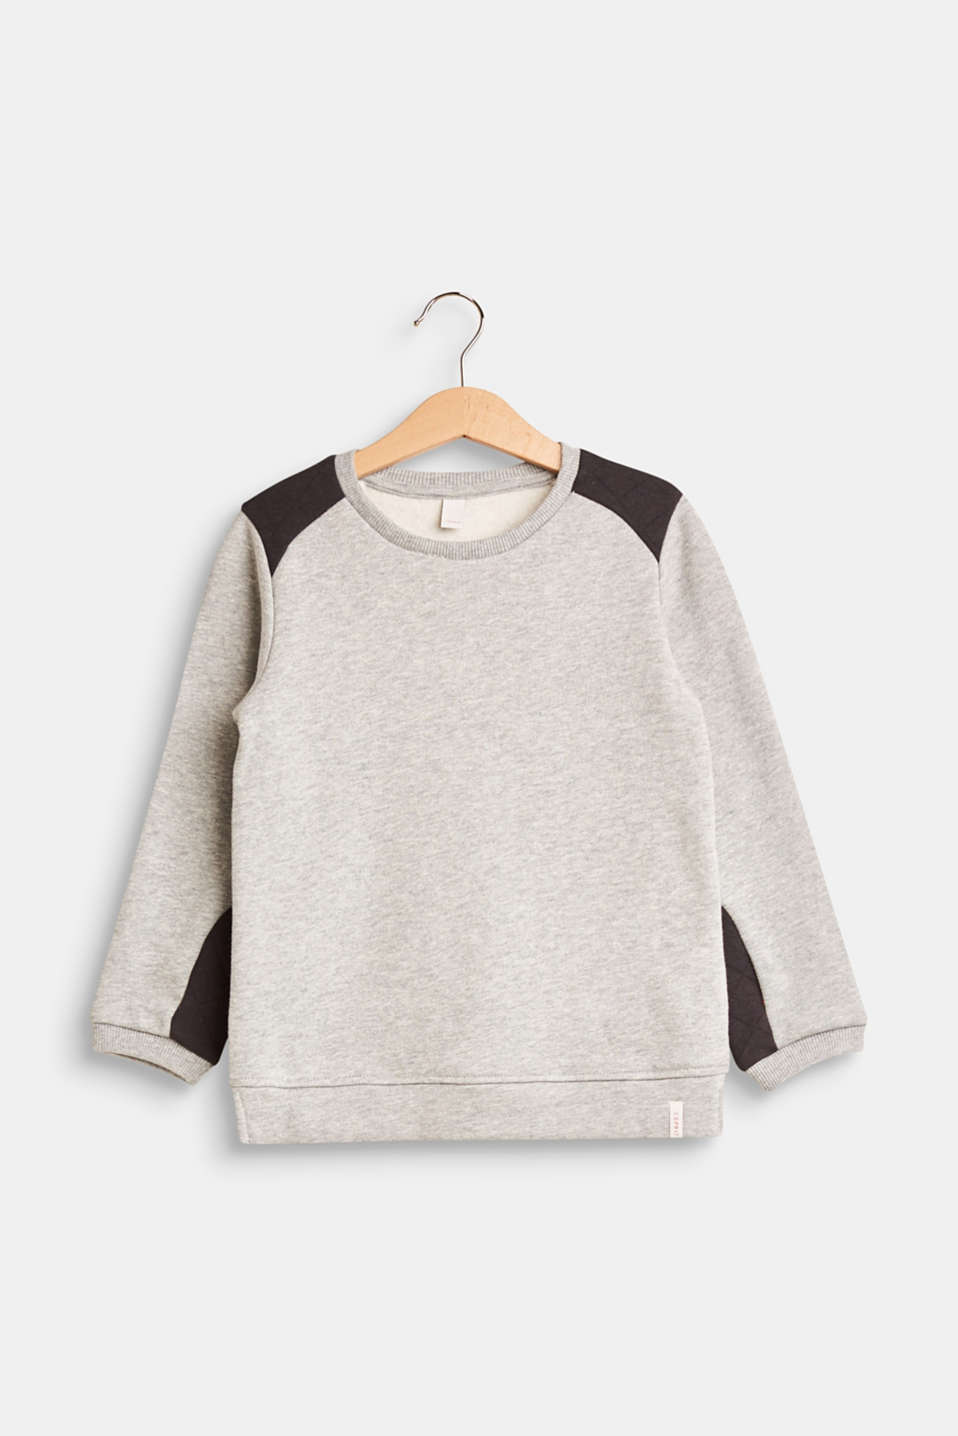 Esprit - Sweatshirt featuring two kinds of jersey, 100% cotton